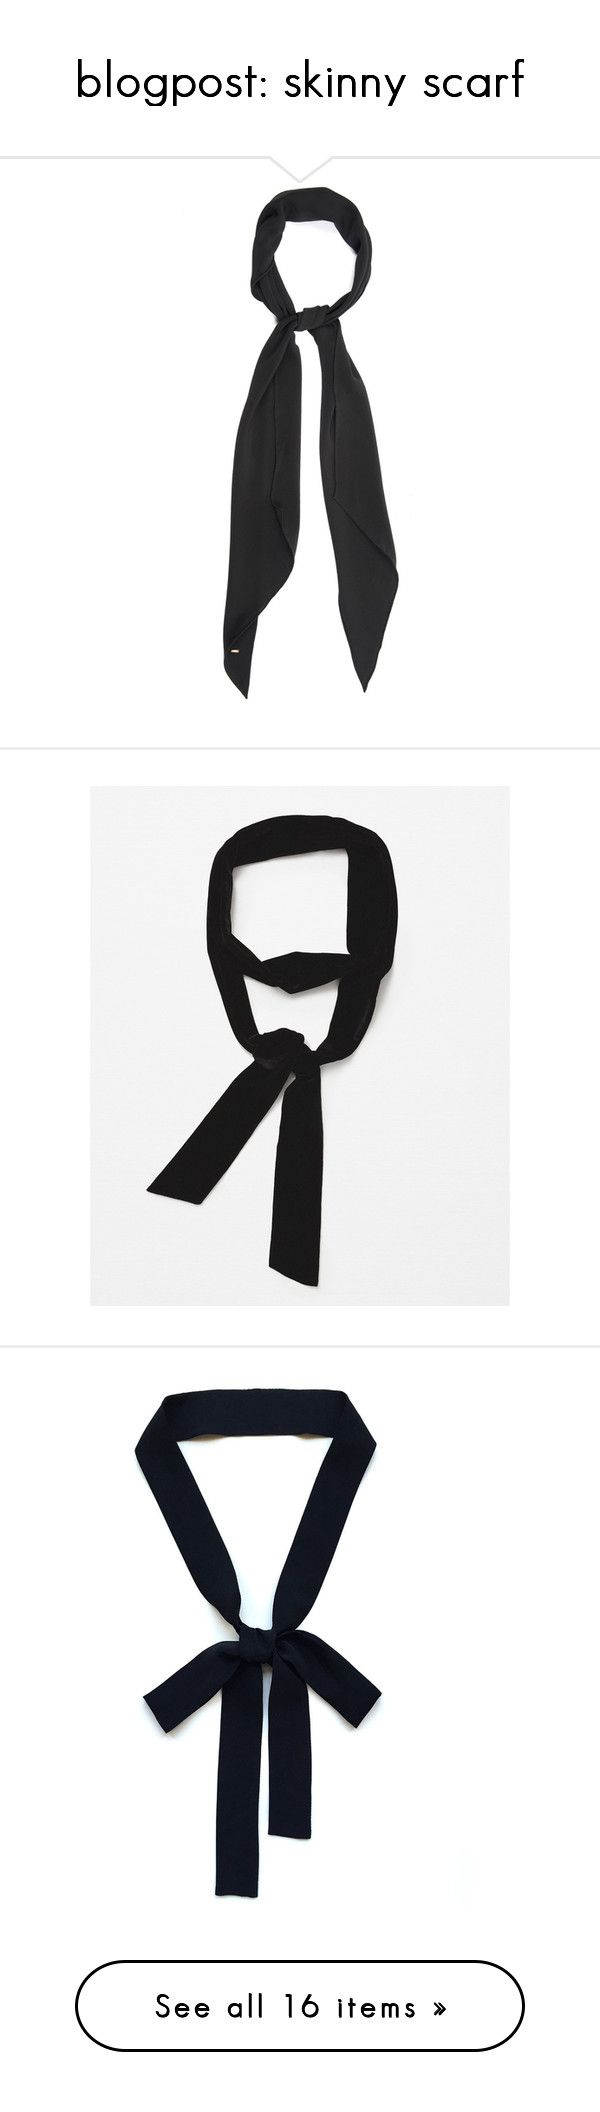 """""""blogpost: skinny scarf"""" by victoriamk ❤ liked on Polyvore featuring accessories, scarves, black scarves, black shawl, yves saint laurent, black, zara scarves, tie scarves, black silk shawl and tying silk scarves"""